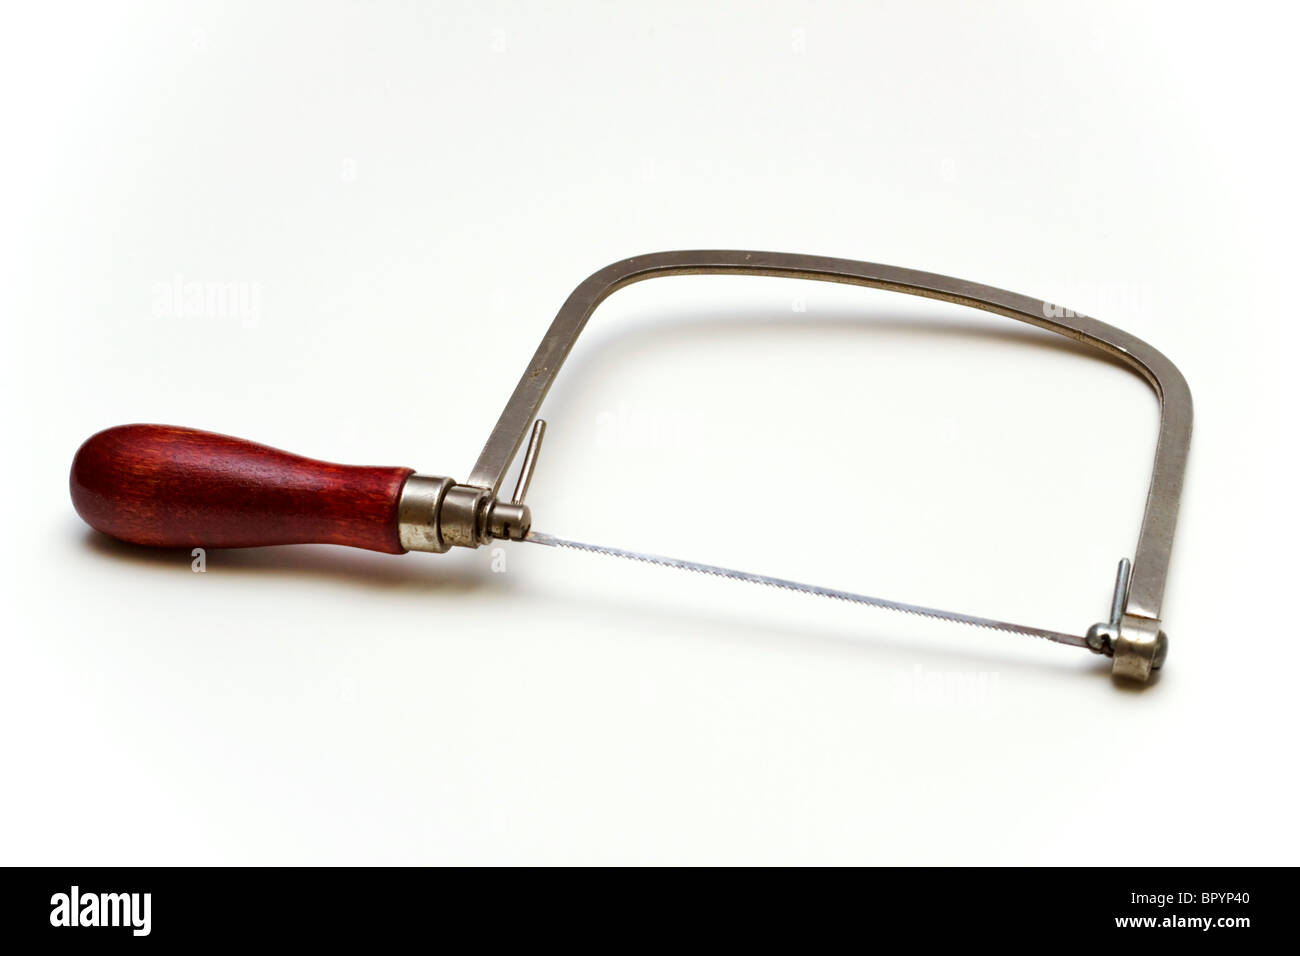 Coping saw - Stock Image